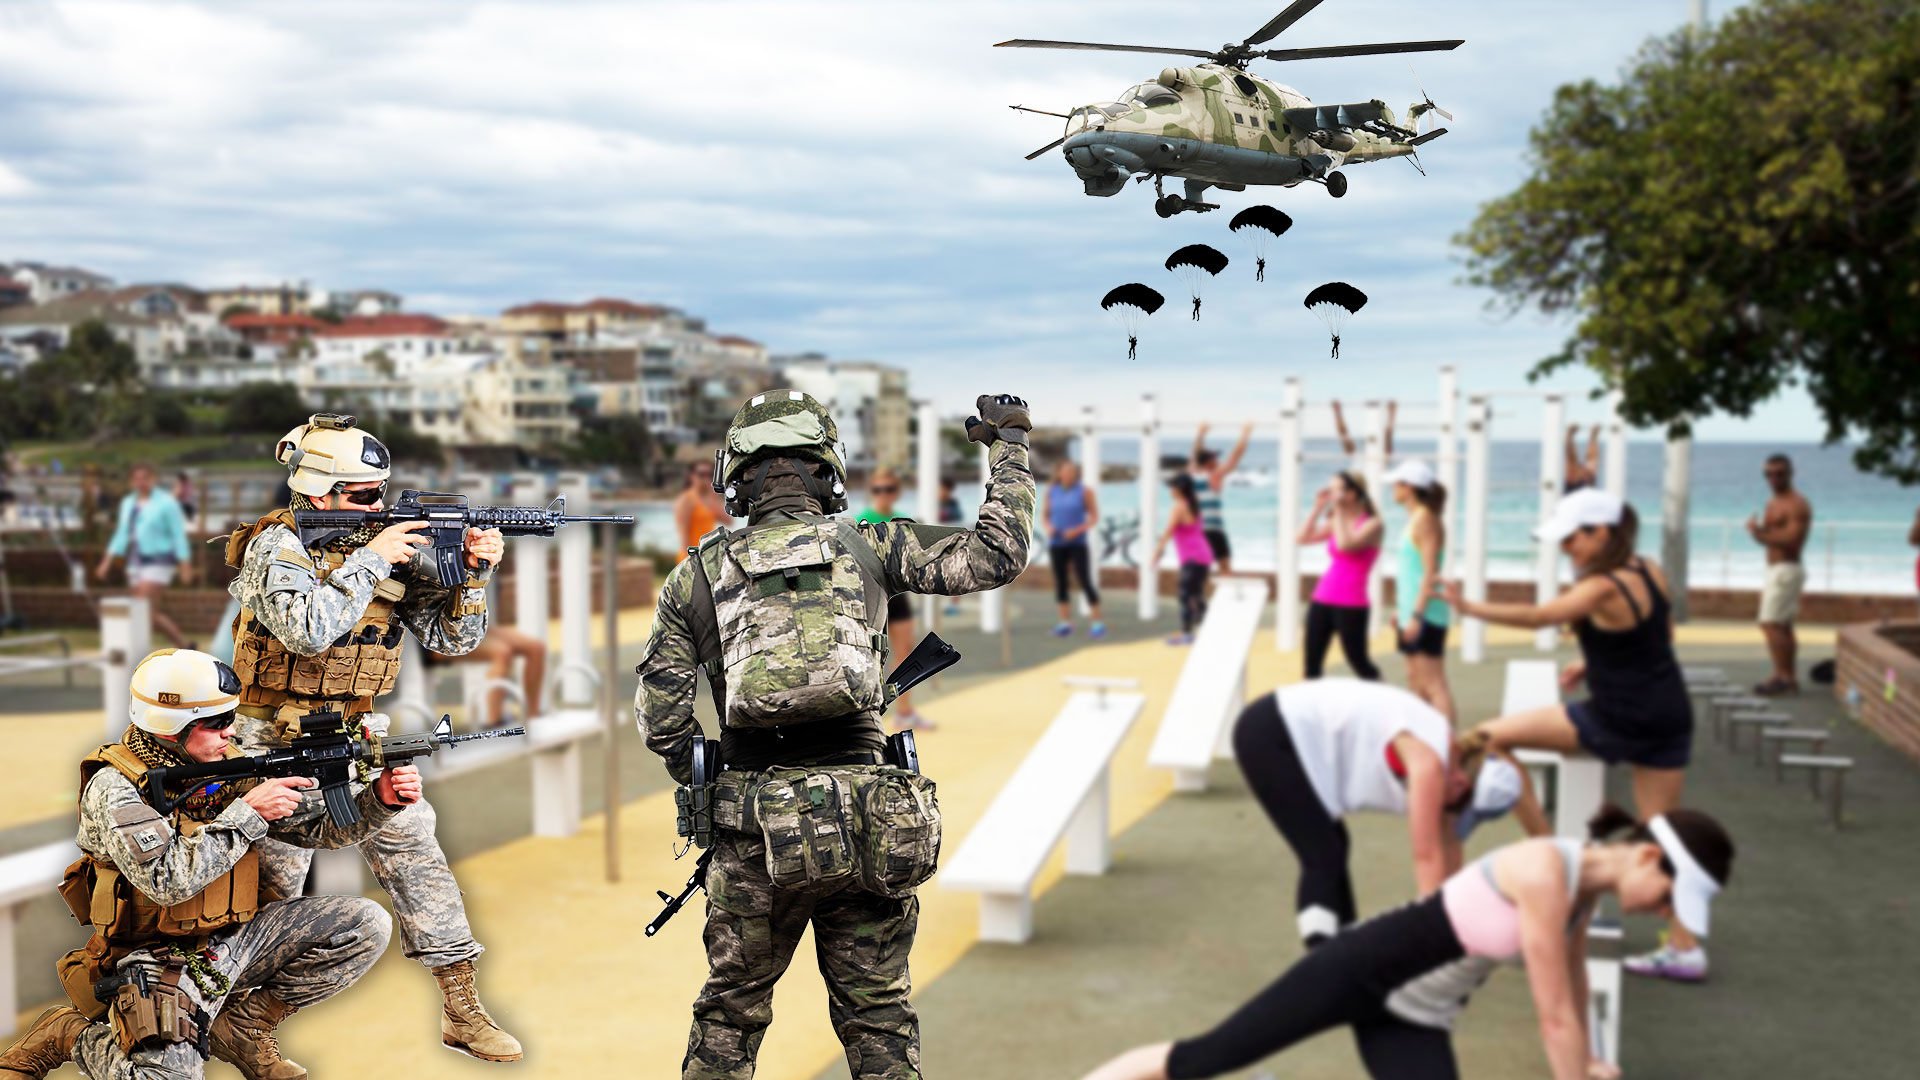 Army Launch Surprise Attack On Bondi Beach Outdoor Gym, Targeting Groups Larger Than Two